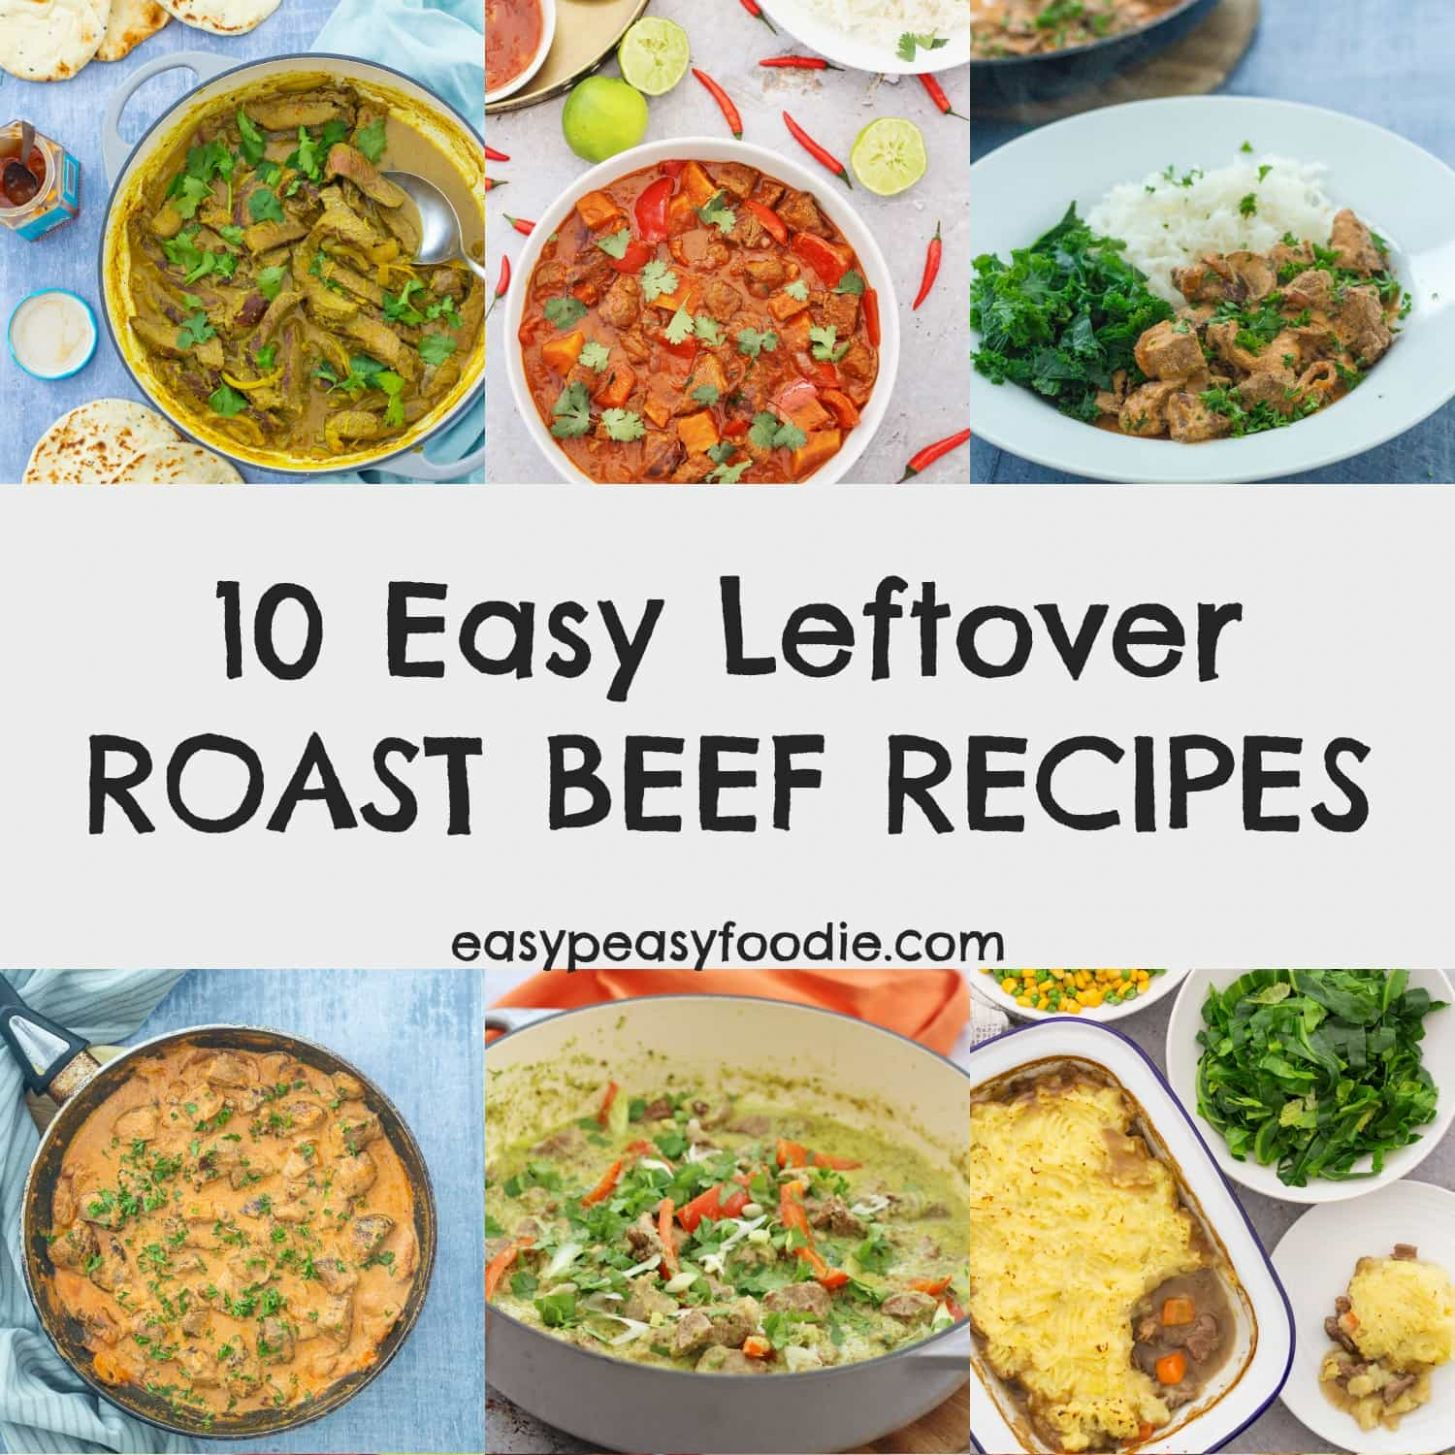 12 Easy Leftover Roast Beef Recipes - Easy Peasy Foodie